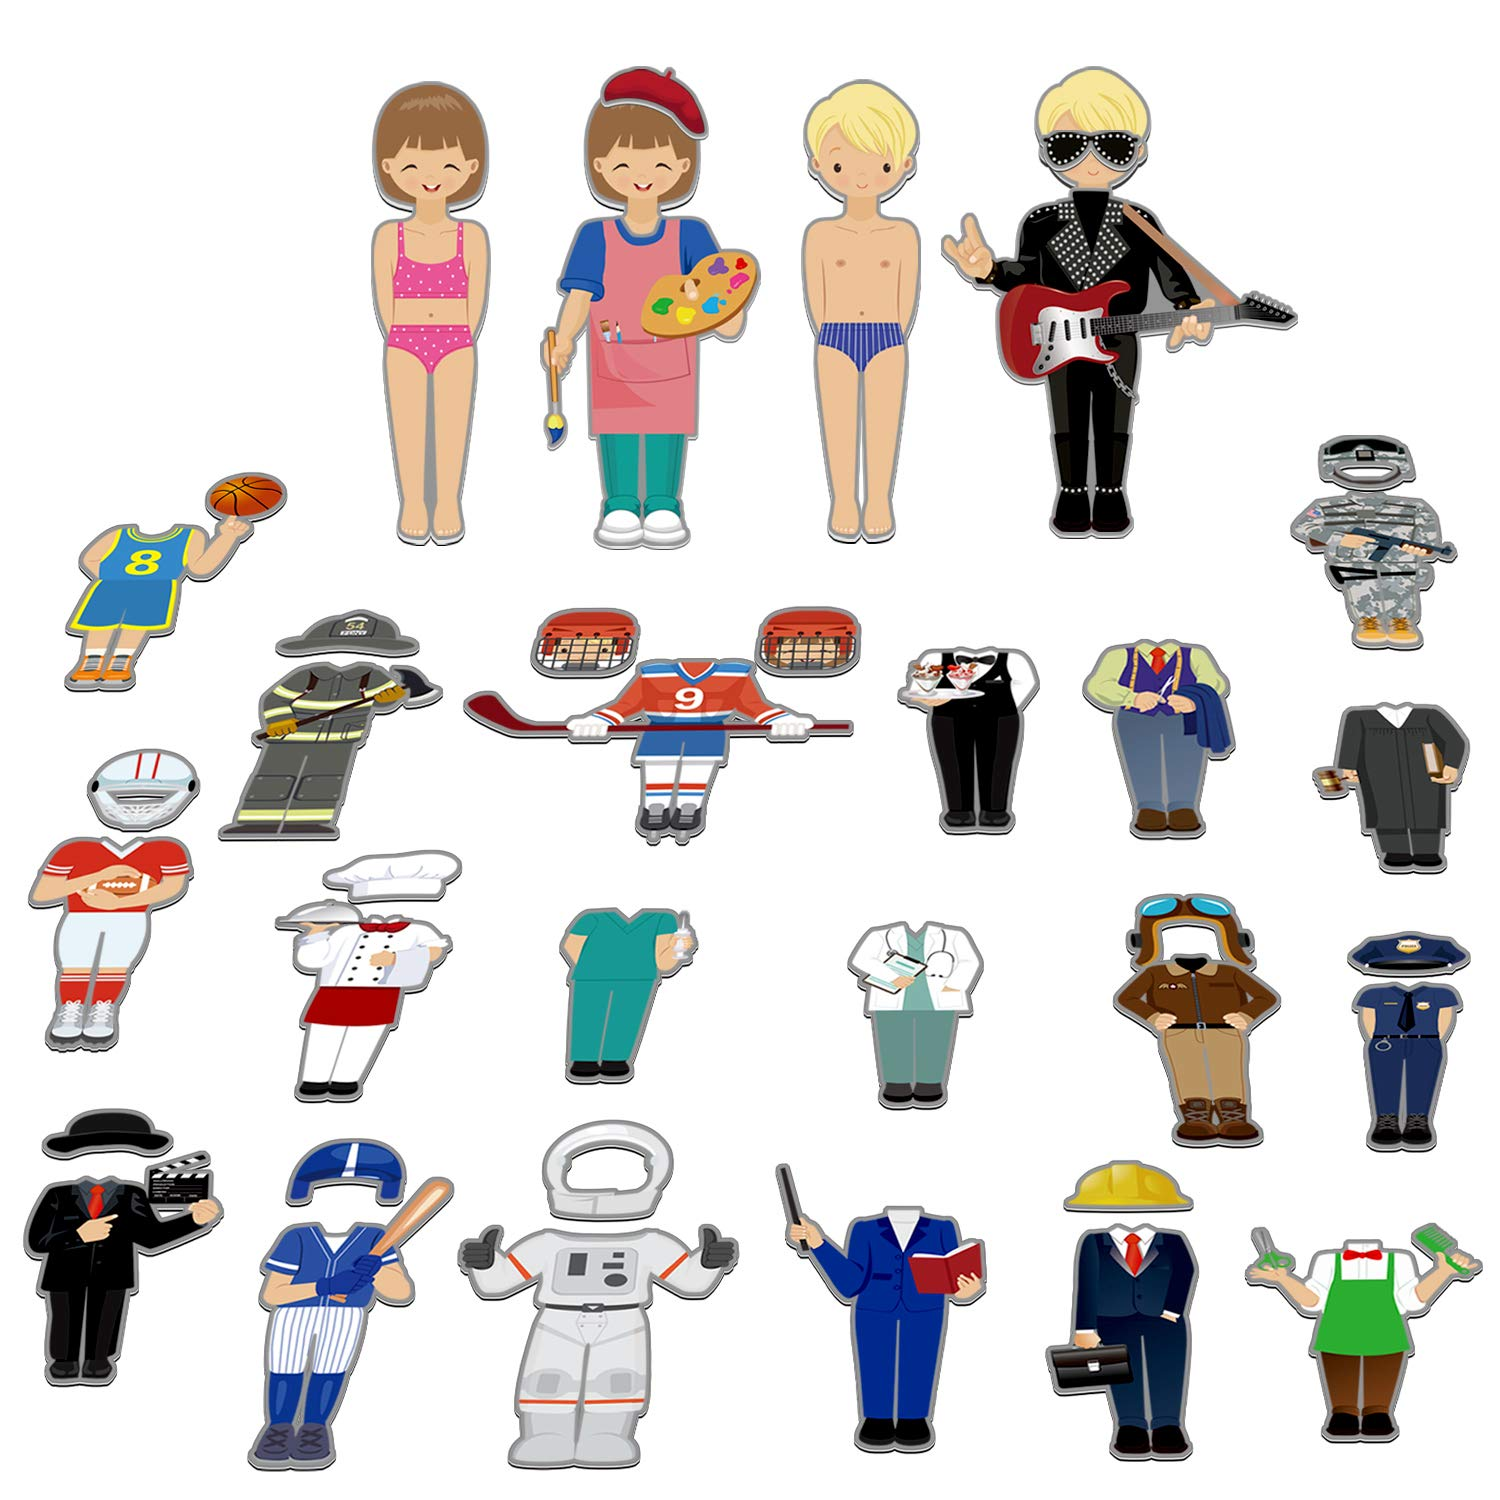 56 PCS Magnetic Dress-up Pretend Play Doll Set with 21 Occupations Jobs, Perfect for Preschool Learning by SpriteGru